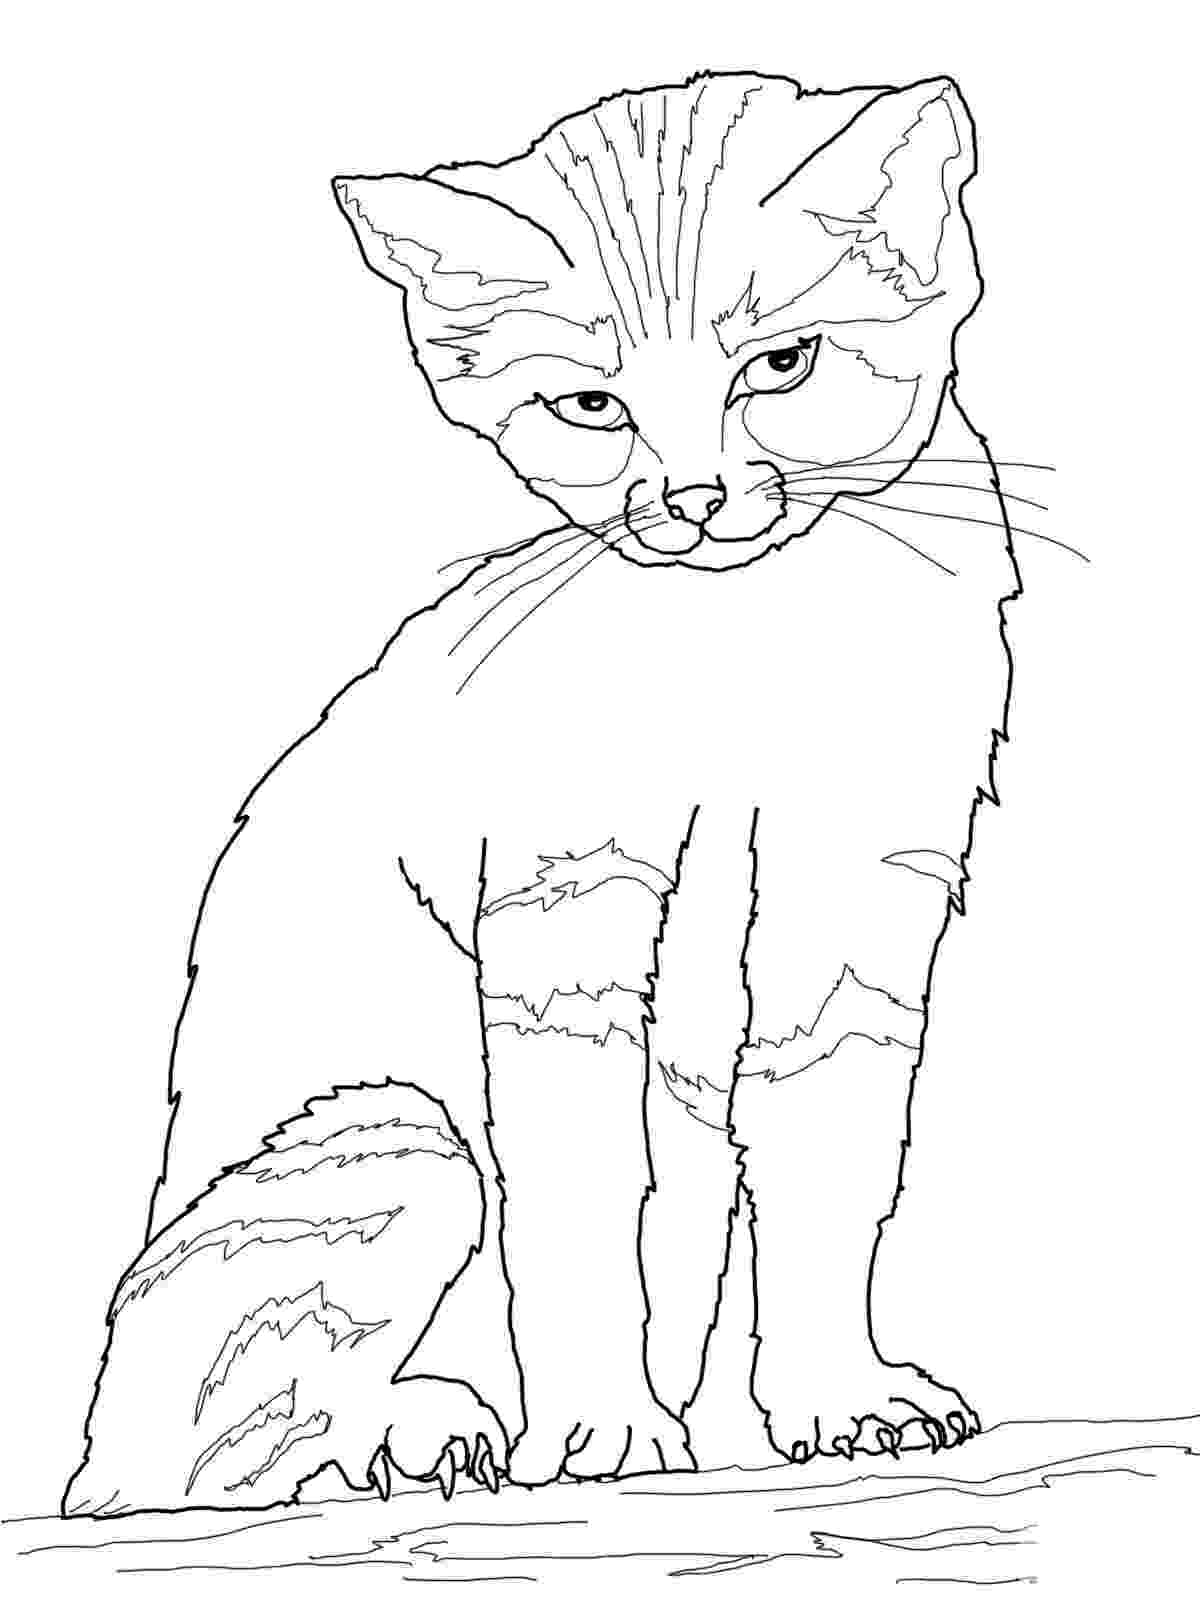 cat coloring sheets free printable cat coloring pages for kids cool2bkids coloring cat sheets